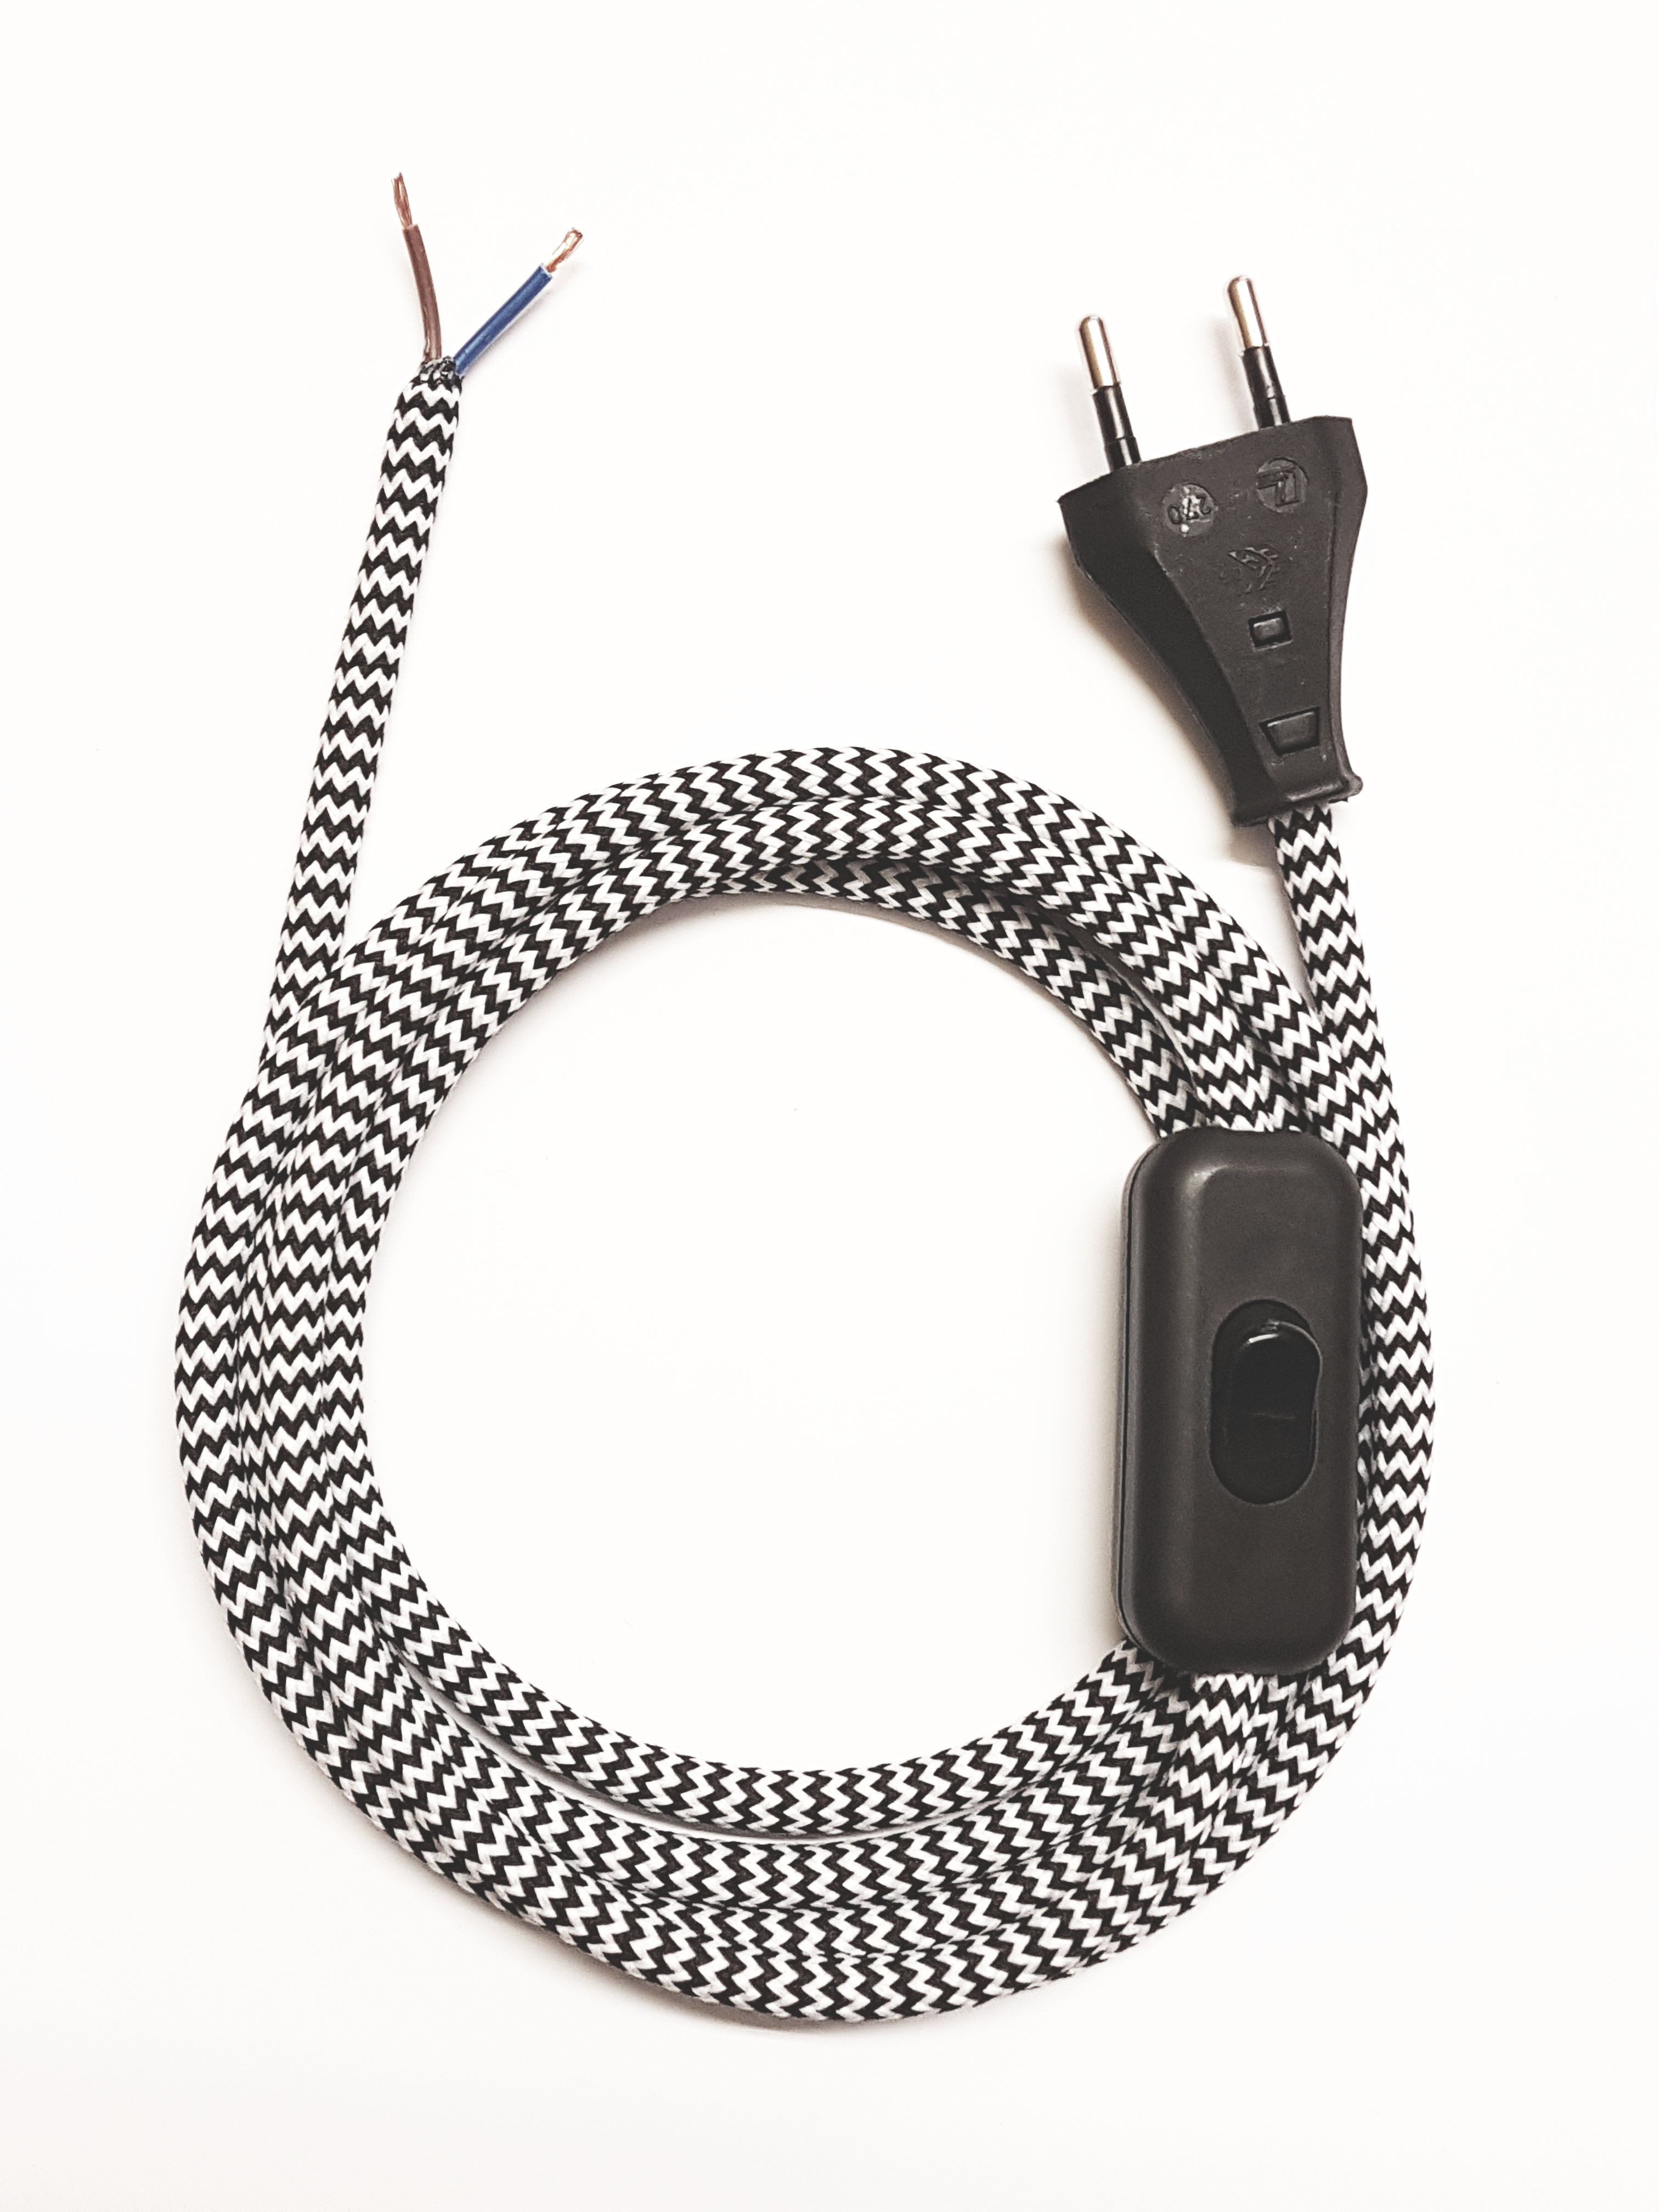 Assembled Supply Cord with Plug and Inline Cord Switch Black-White Zig Zag 2 Core